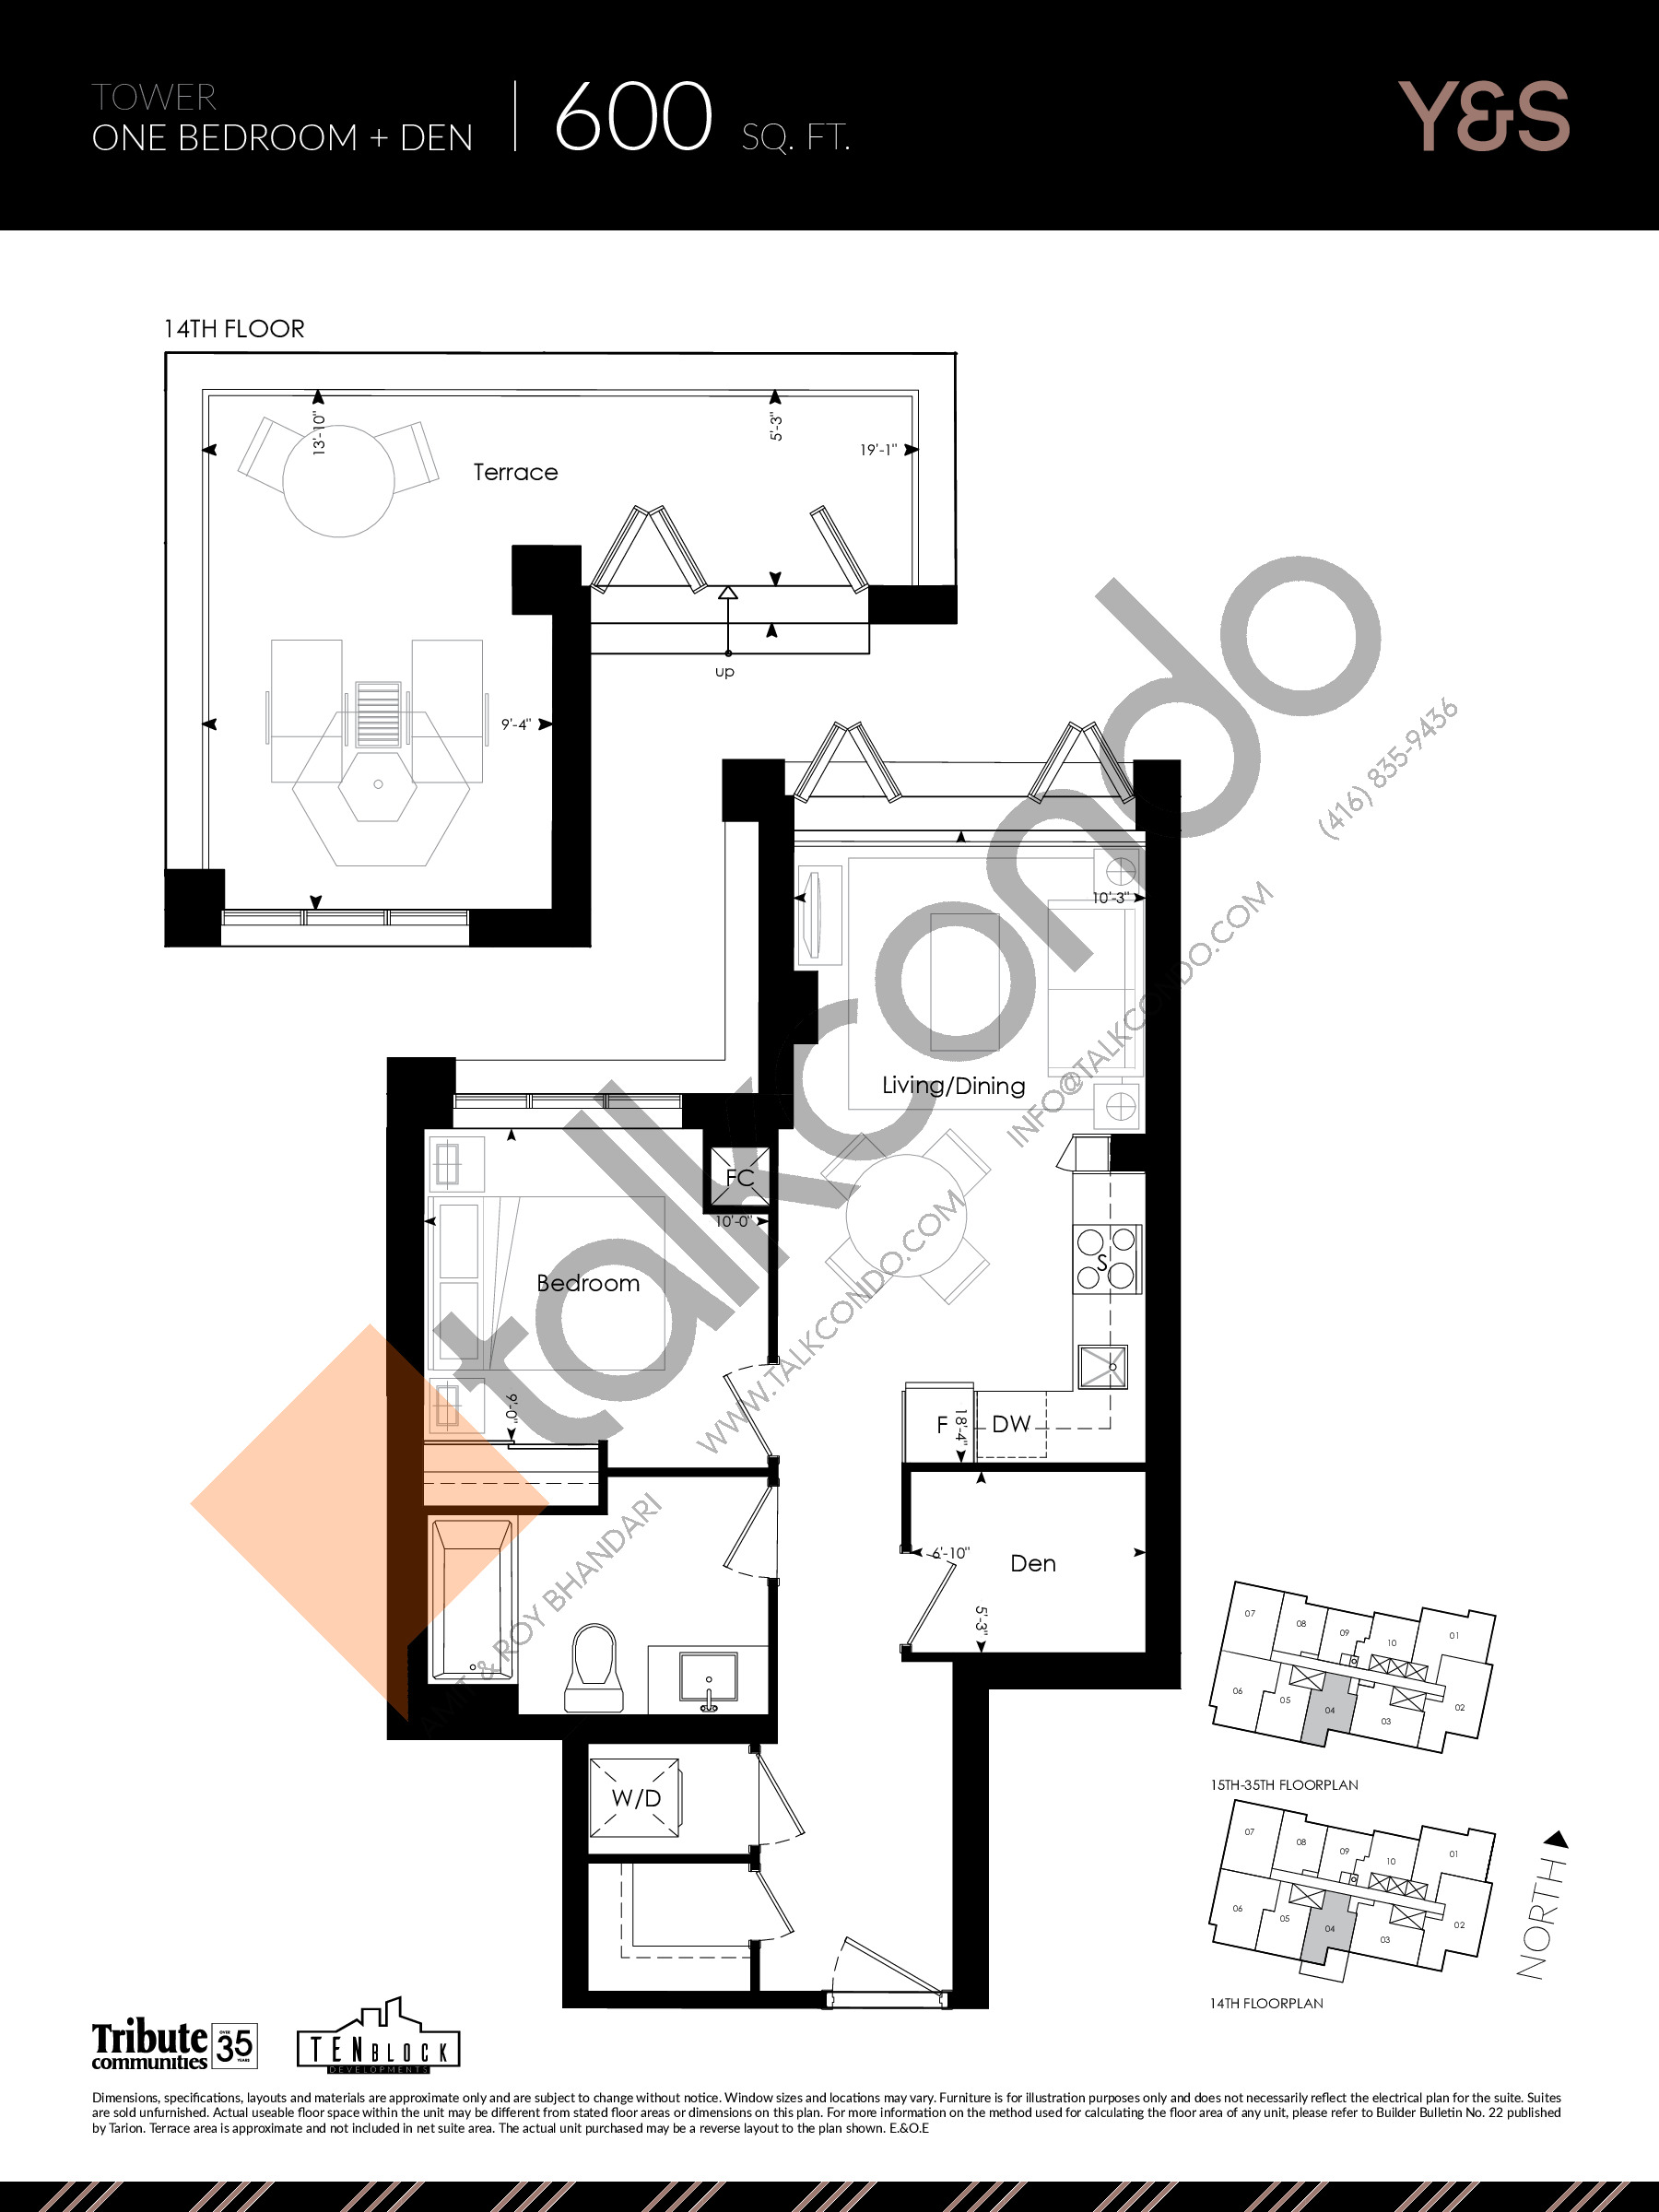 600 sq. ft. Floor Plan at Y&S Condos - 600 sq.ft